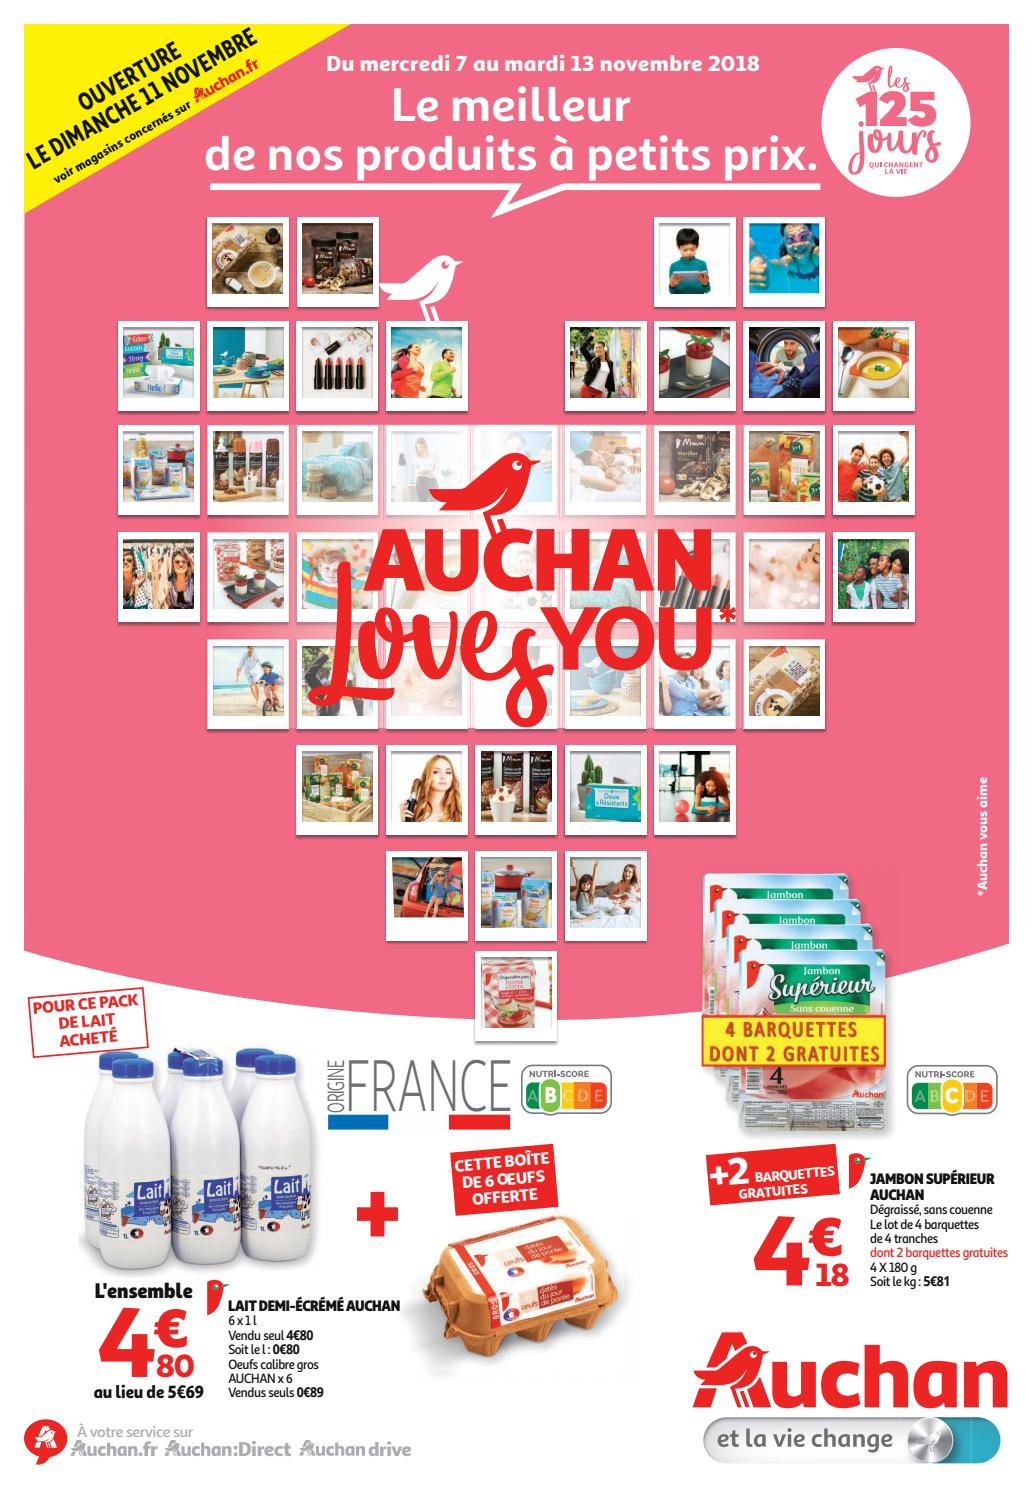 Catalogue Auchan Hypermarché By Monsieurechantillonsfr Issuu